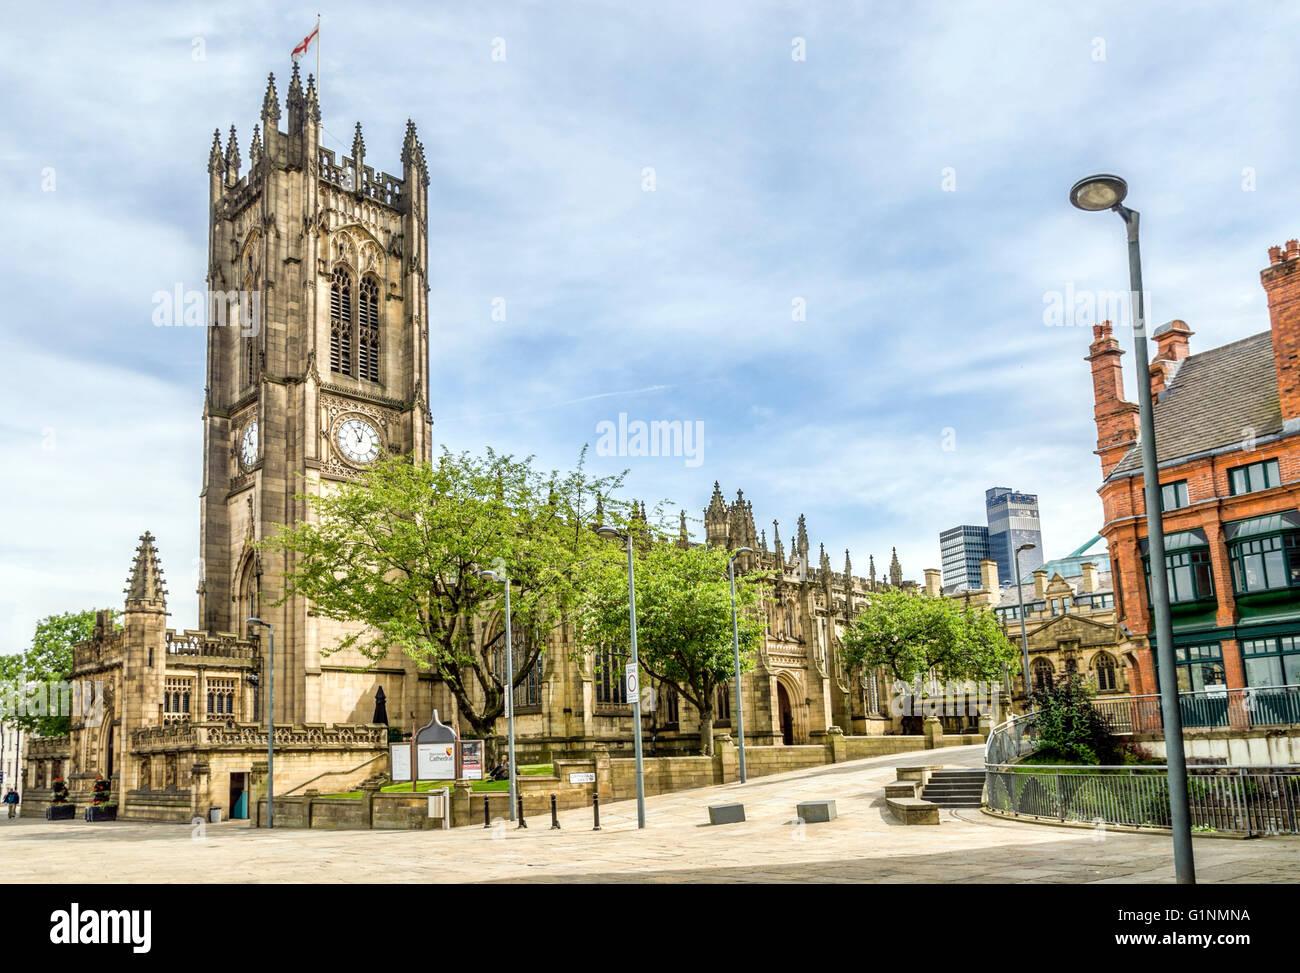 Manchester Cathedral is a Medieval church located on Victoria Street in central Manchester, England, UK - Stock Image